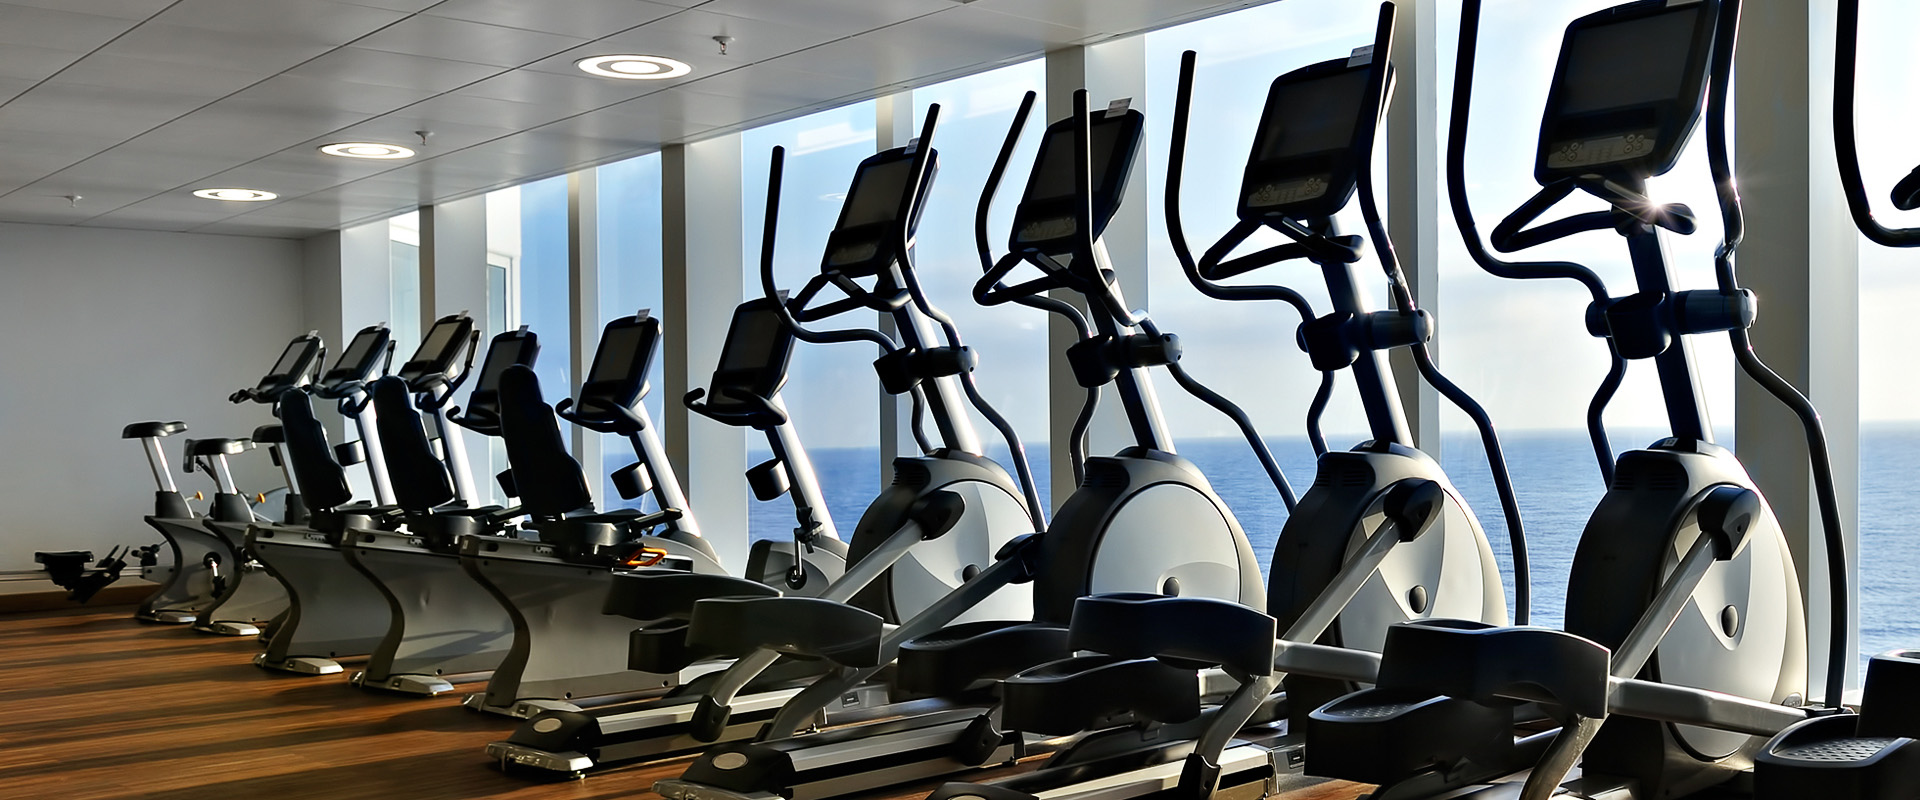 Staying Motivated Through Your Fitness Program